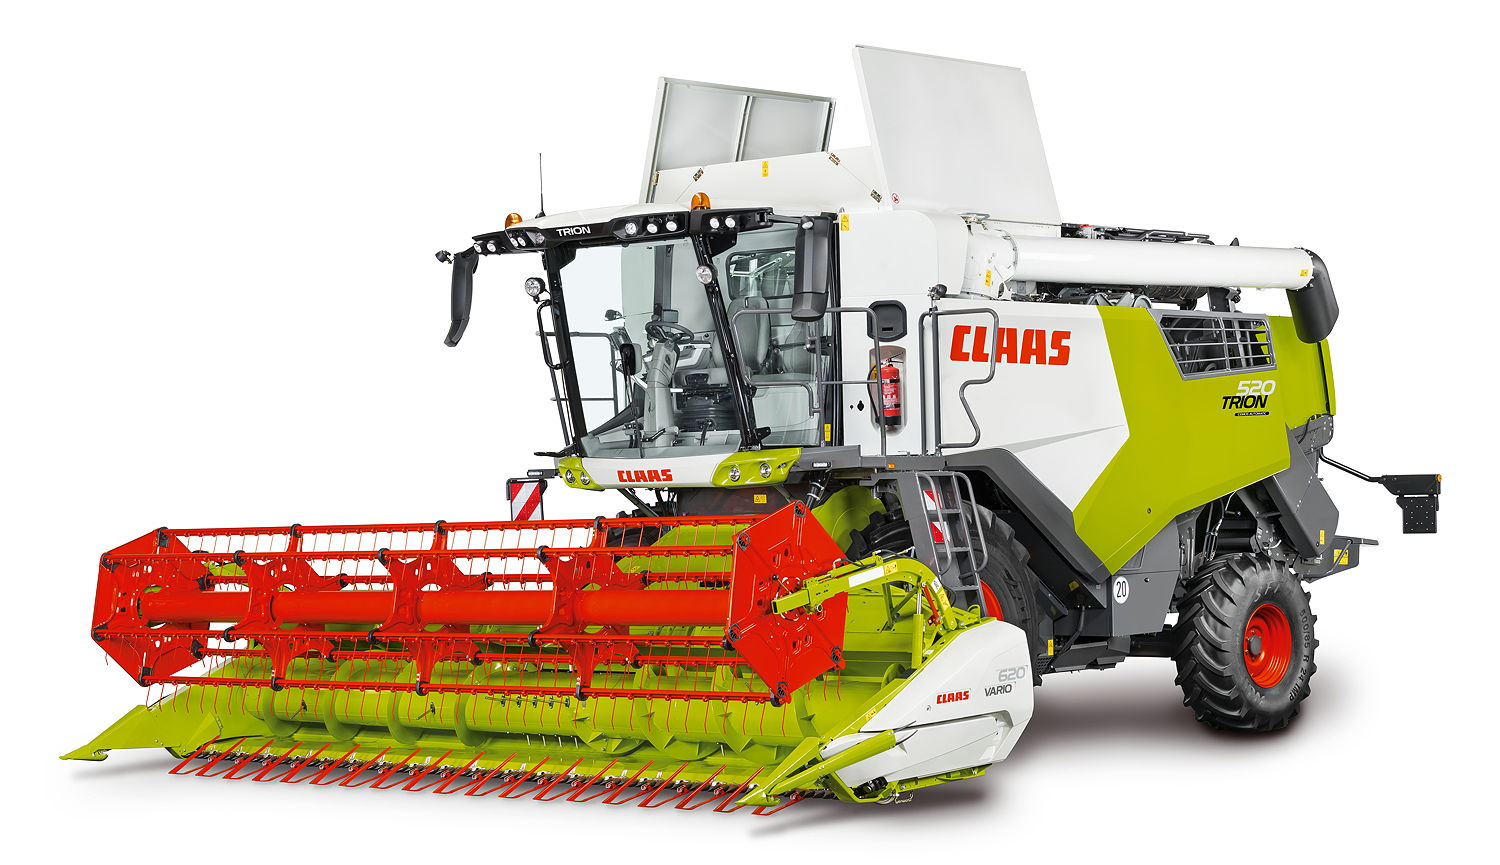 The new Claas Trion range starts with the 520 model